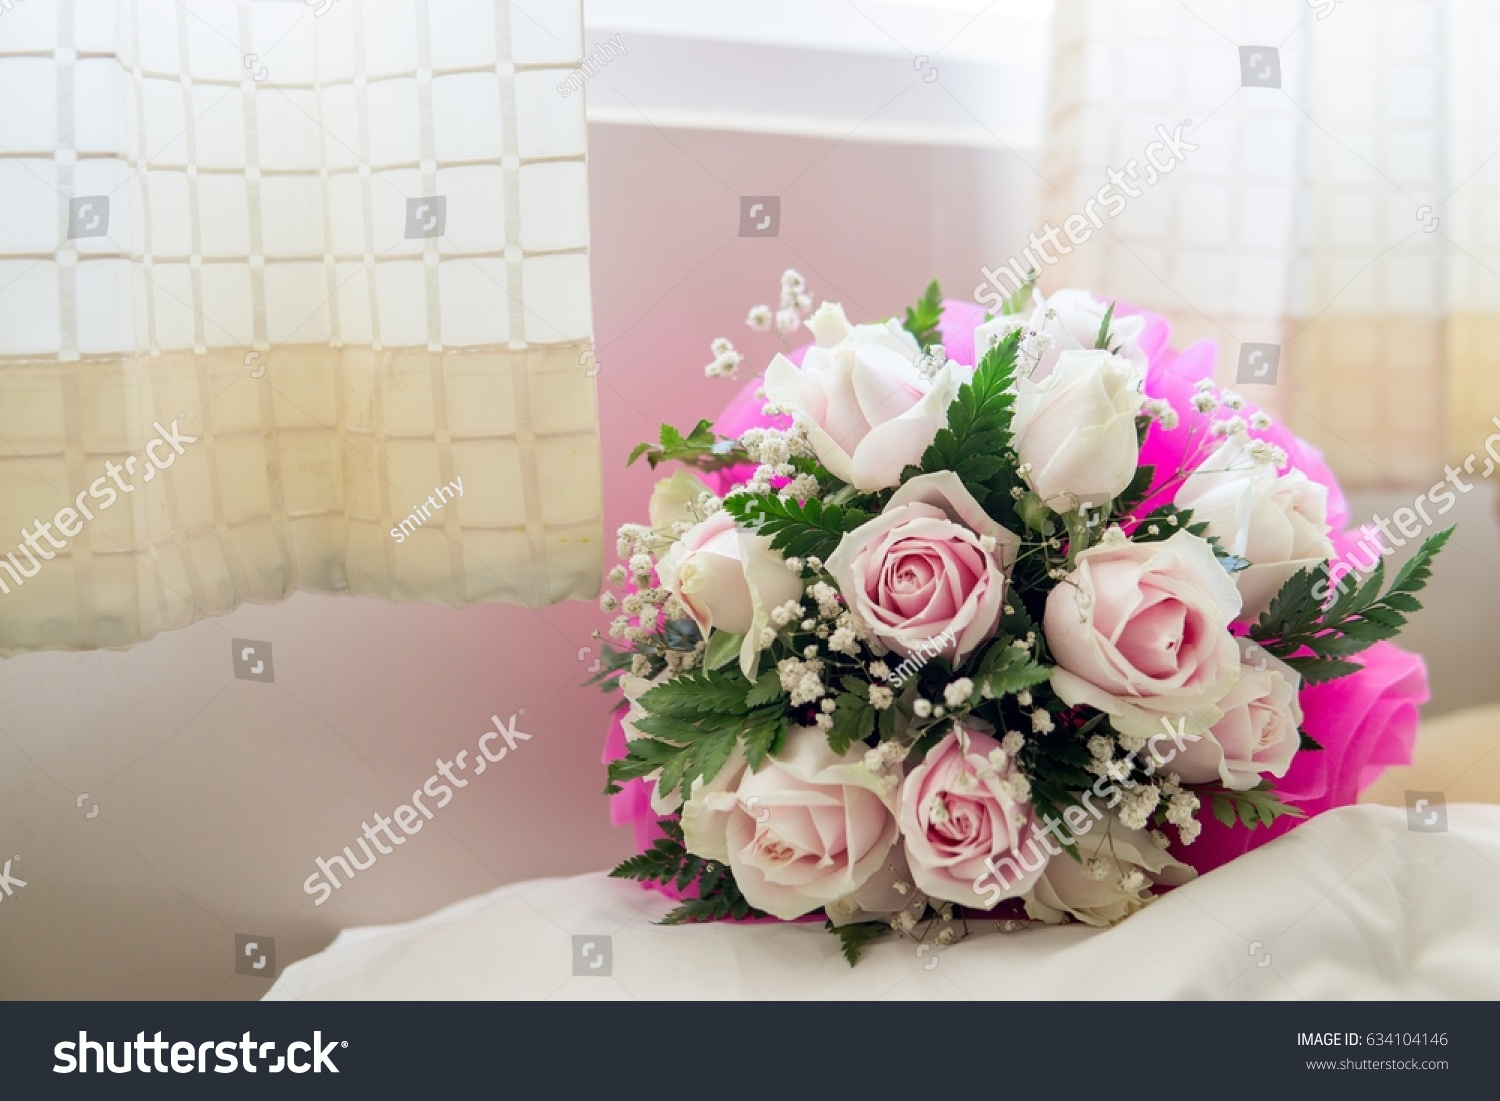 Beautiful shiny white pink roses flowers stock photo edit now beautiful shiny white and pink roses flowers next to the window as a gift in valentine izmirmasajfo